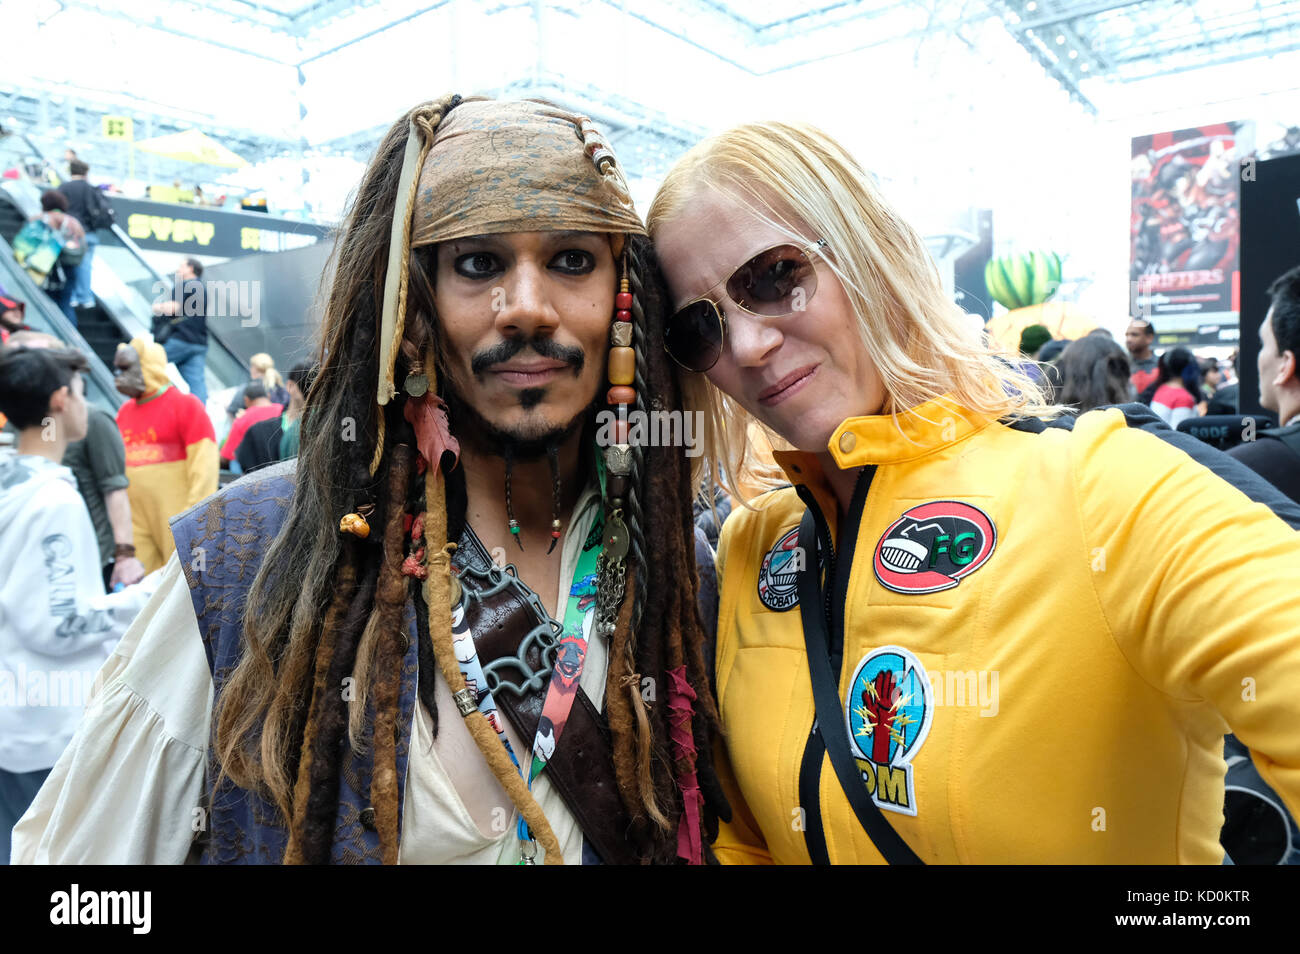 New York Usa 7th October 2017 Costumes At Comic Con New York City Stock Photo Alamy